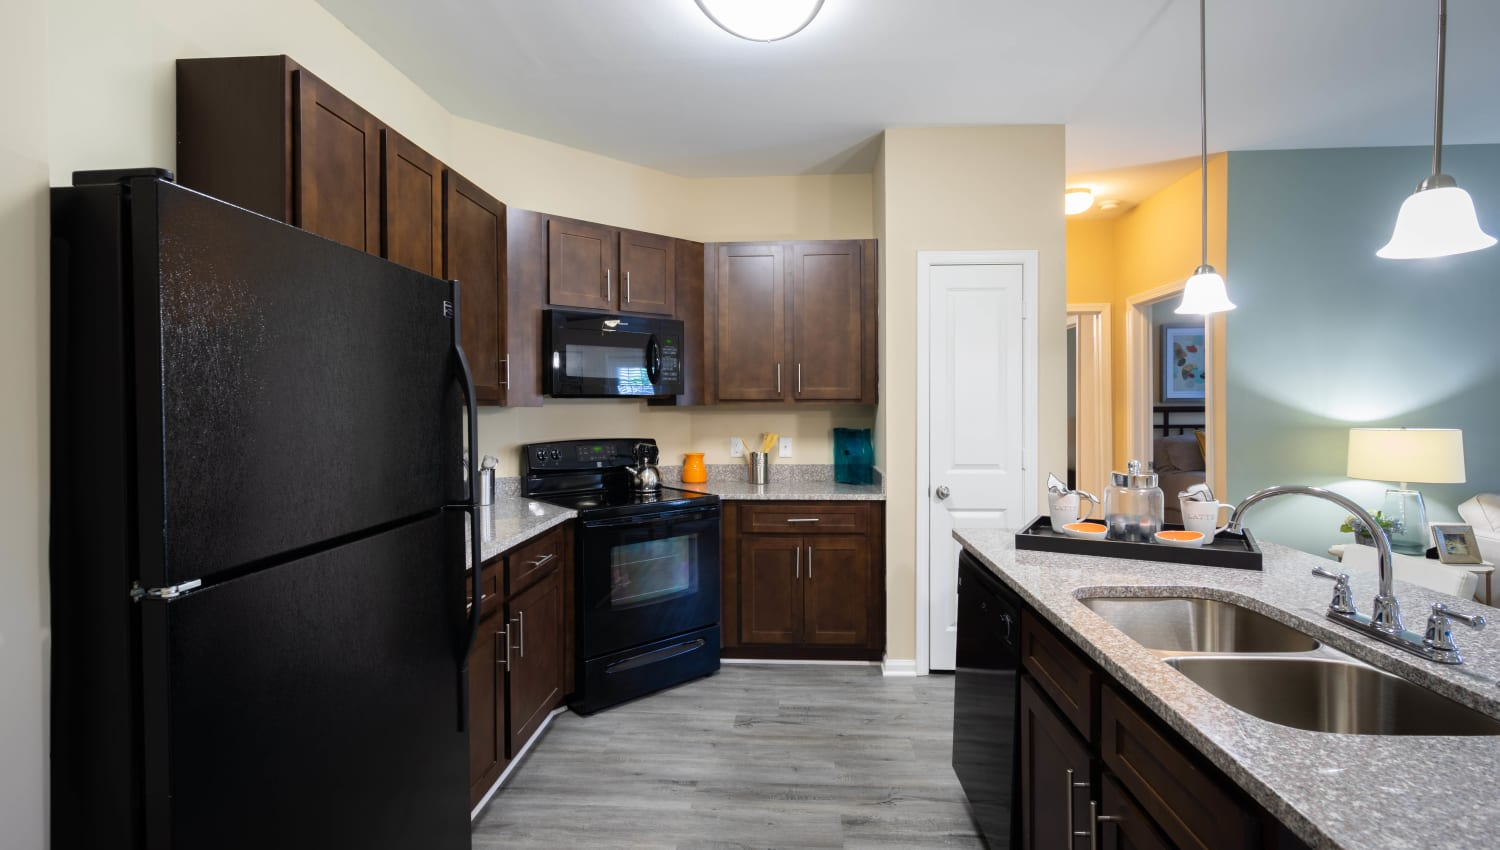 Gourmet kitchen with rich espresso-wood cabinetry in a model home at Legends at White Oak in Ooltewah, Tennessee